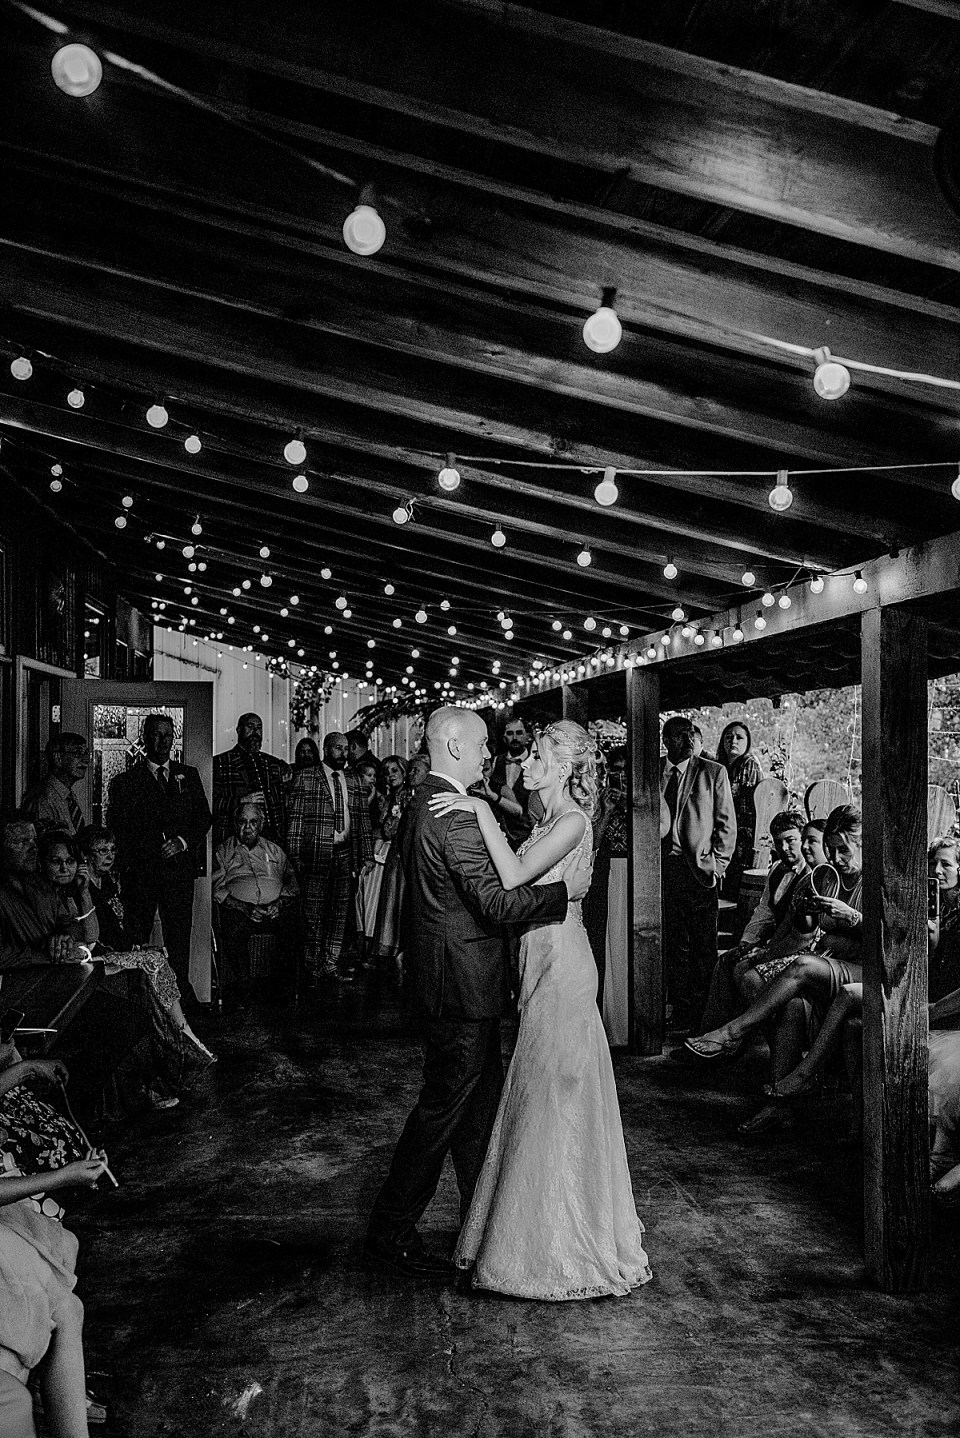 wedding-reception-with-pastel-rustic-decor-at-saskatoon-farm-near-calgary-raelene-schulmeister-photography